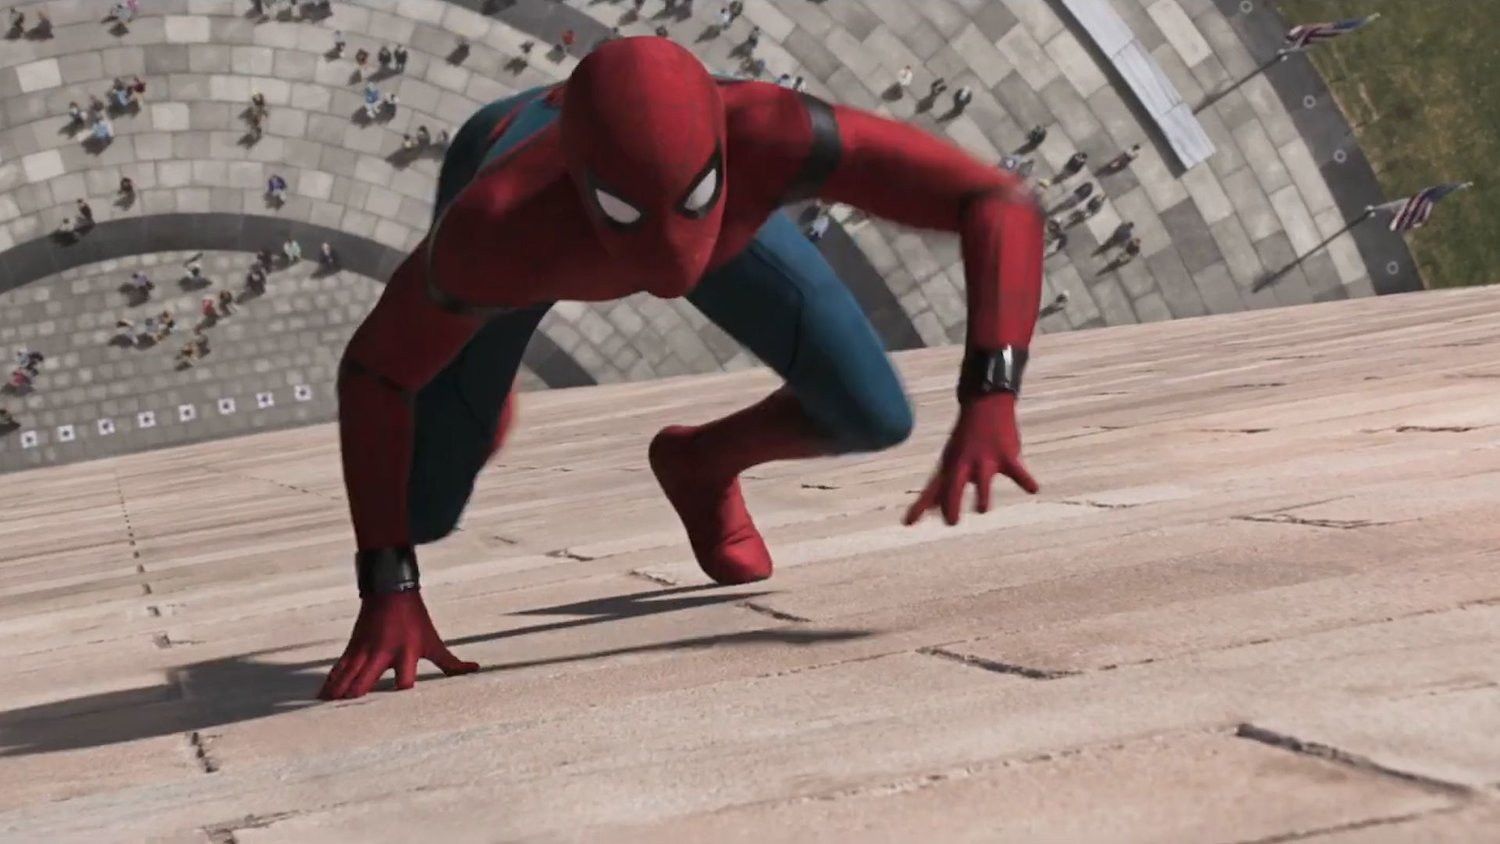 NECA Announces Life-Size Spider-Man Figure for SPIDER-MAN: HOMECOMING